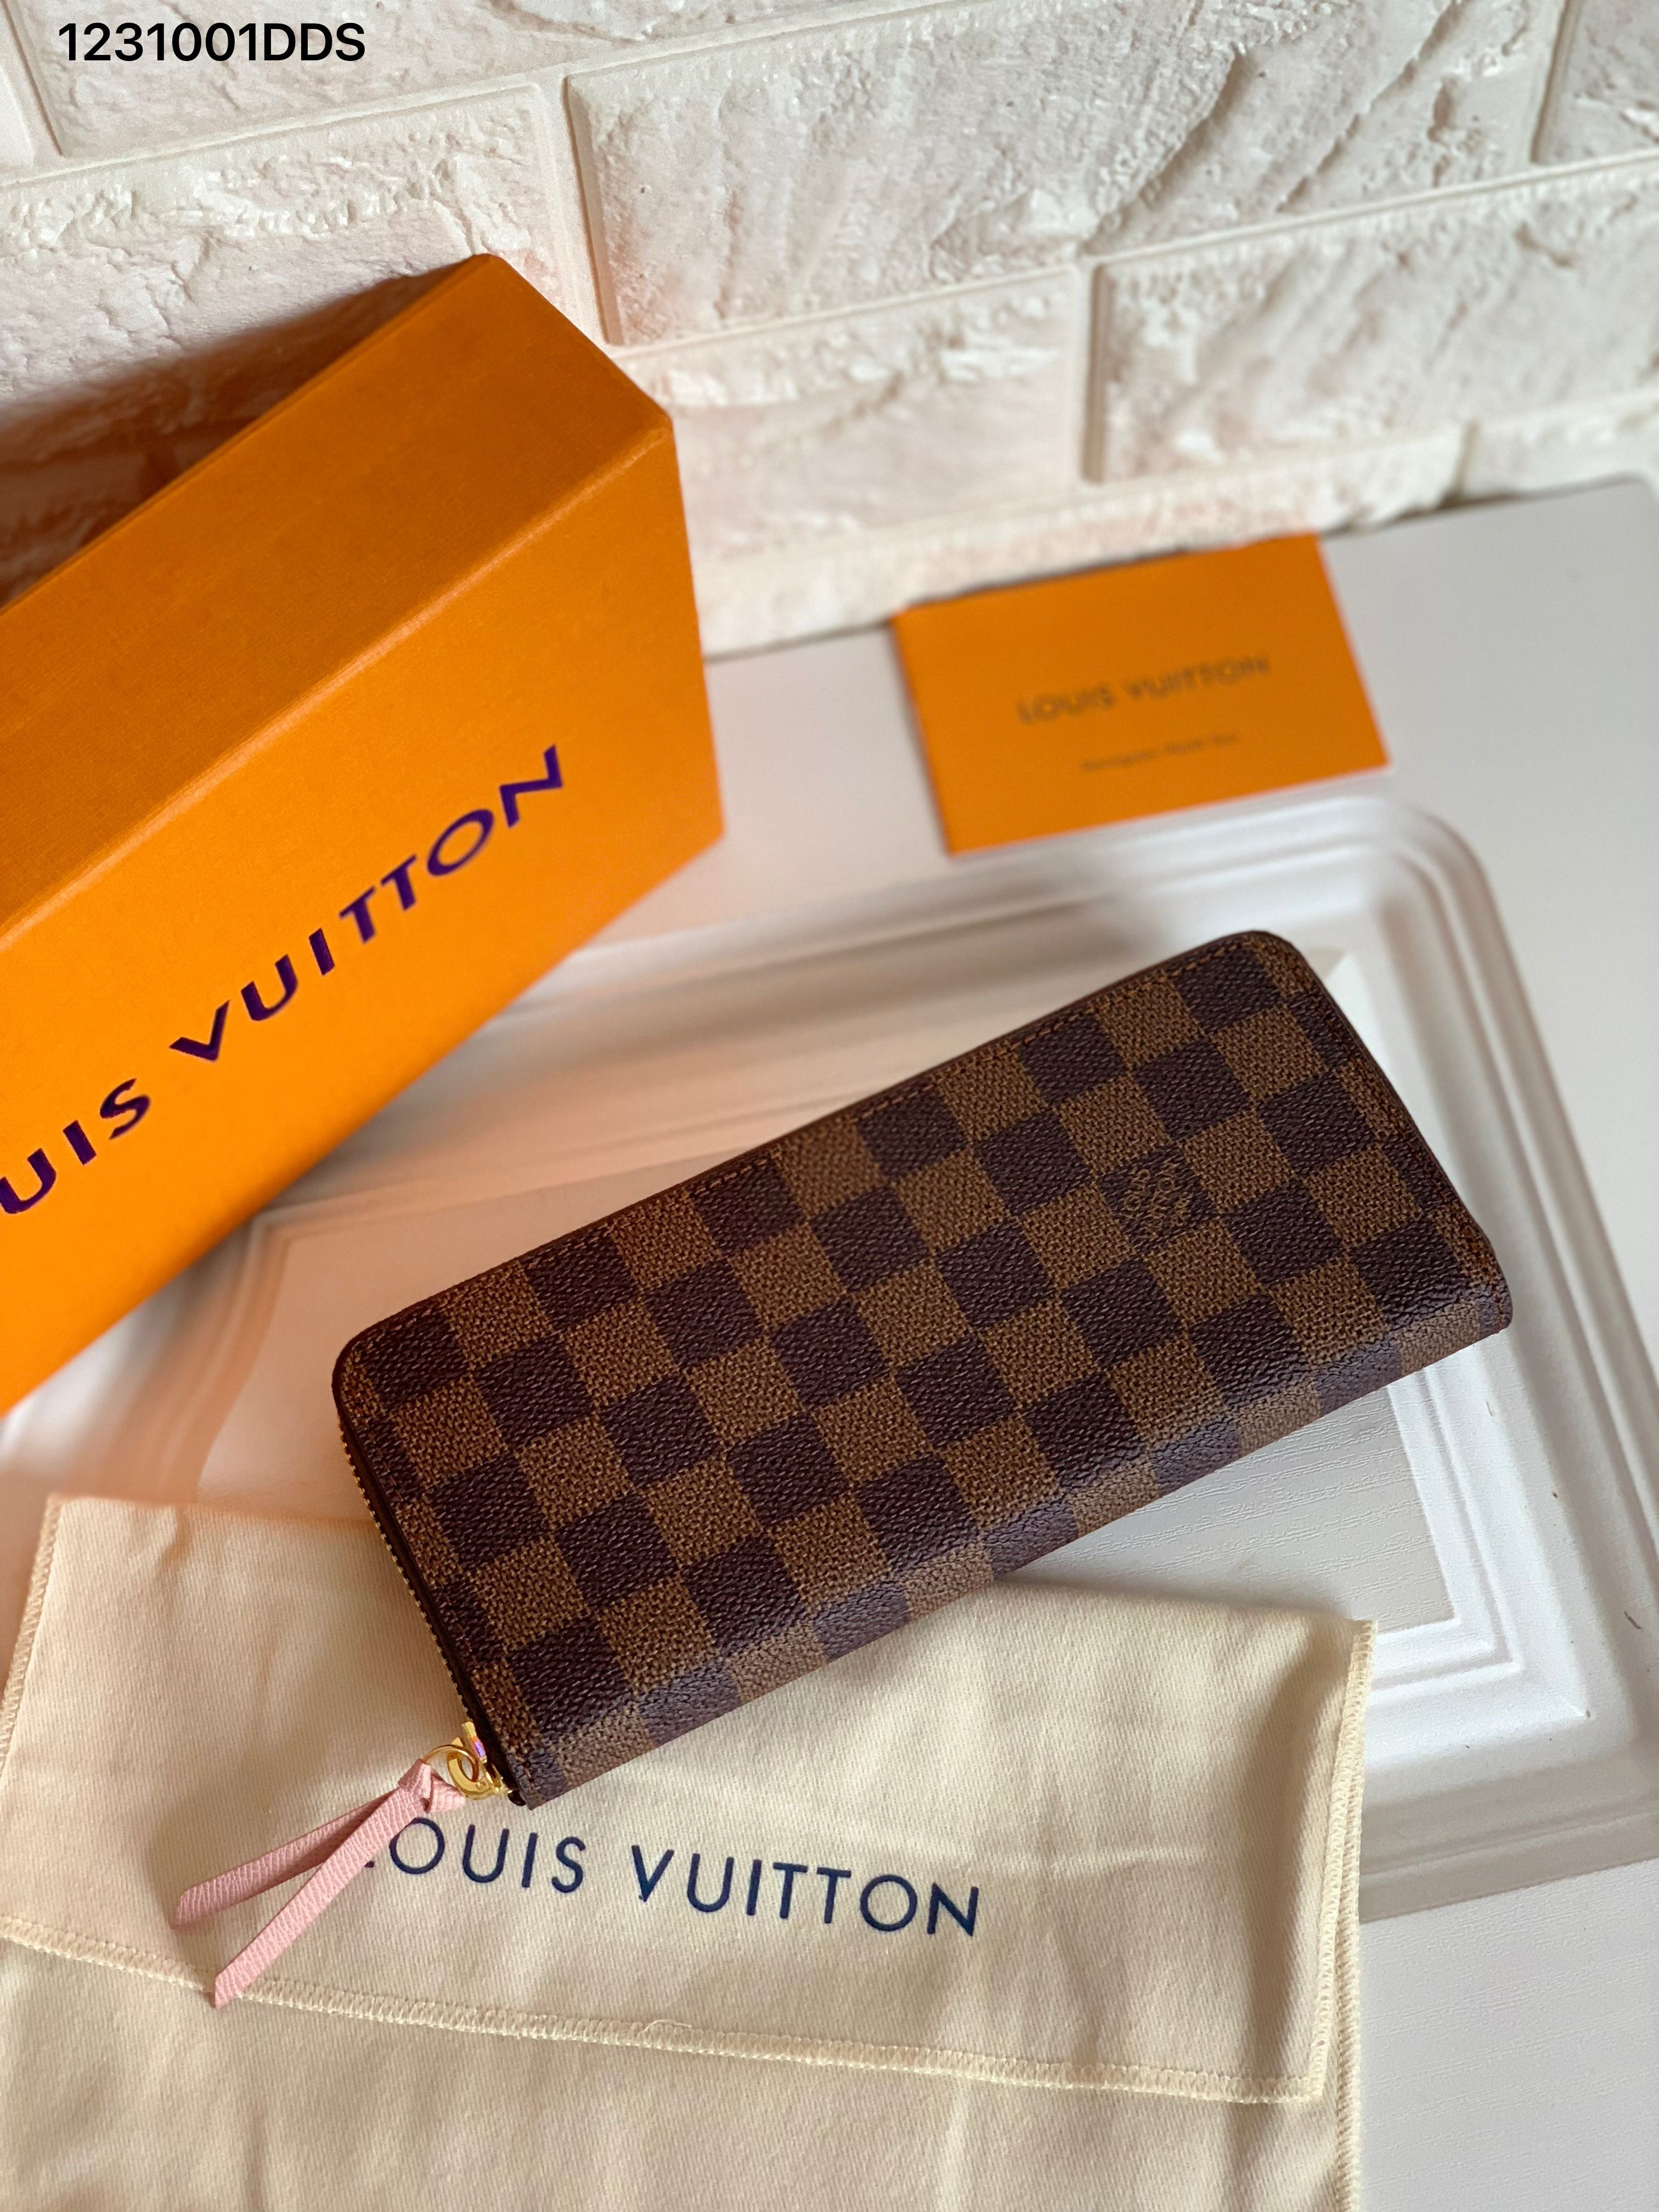 Louis Vuitton Lv Woman Clemence Wallet Brown Checks Damier Ebene With Pink In Louis Vuitton Clemence Wallet Louis Vuitton Wallet Women Louis Vuitton Collection